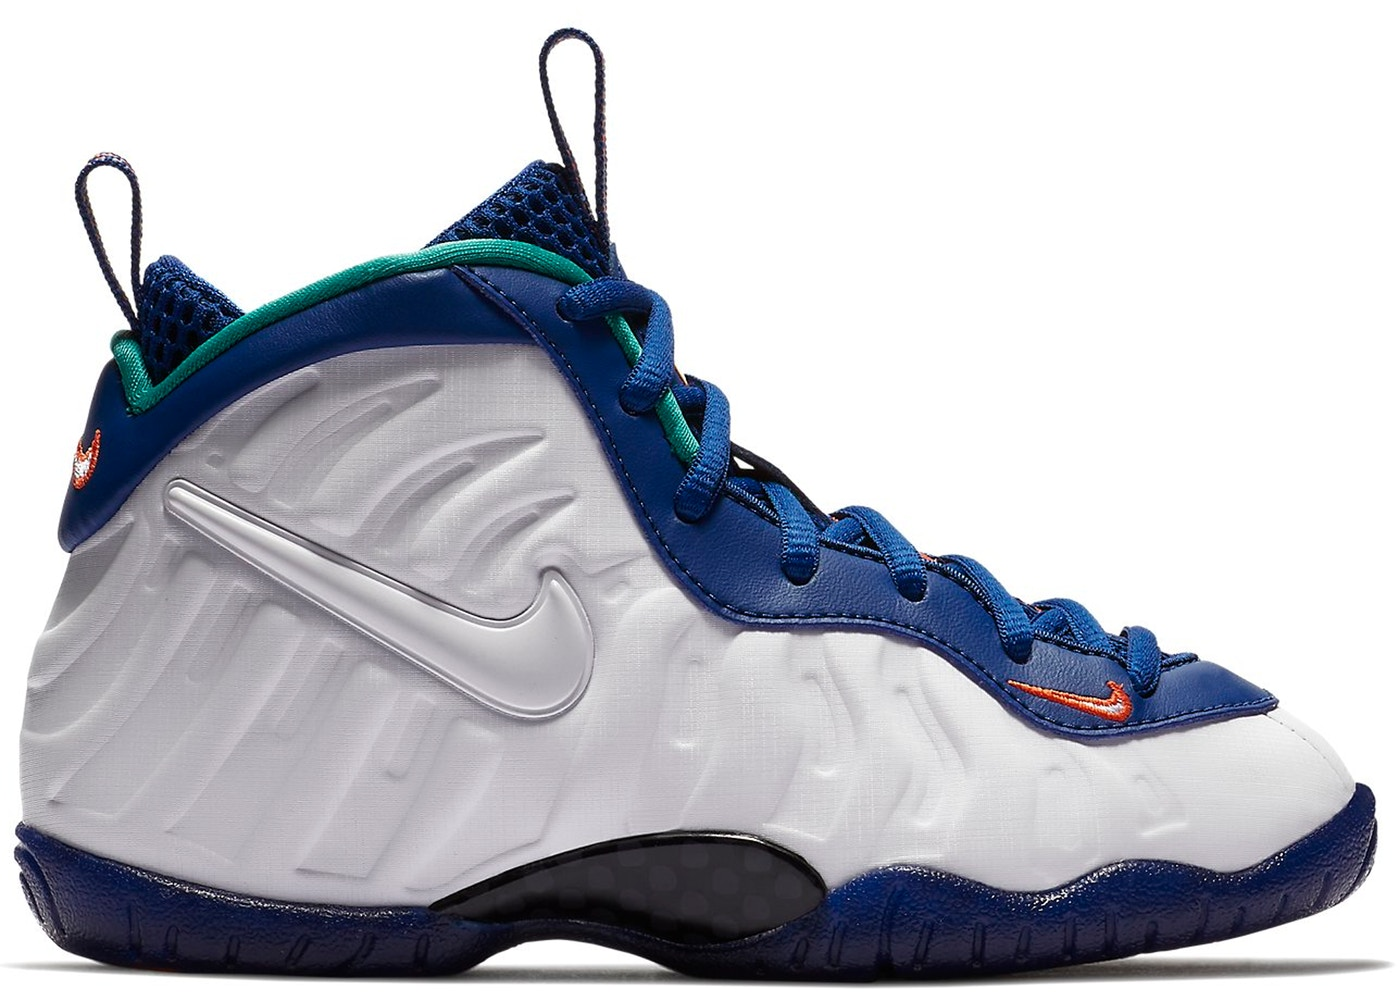 super popular fead7 aeae3 Air Foamposite Pro Gym Blue (PS)